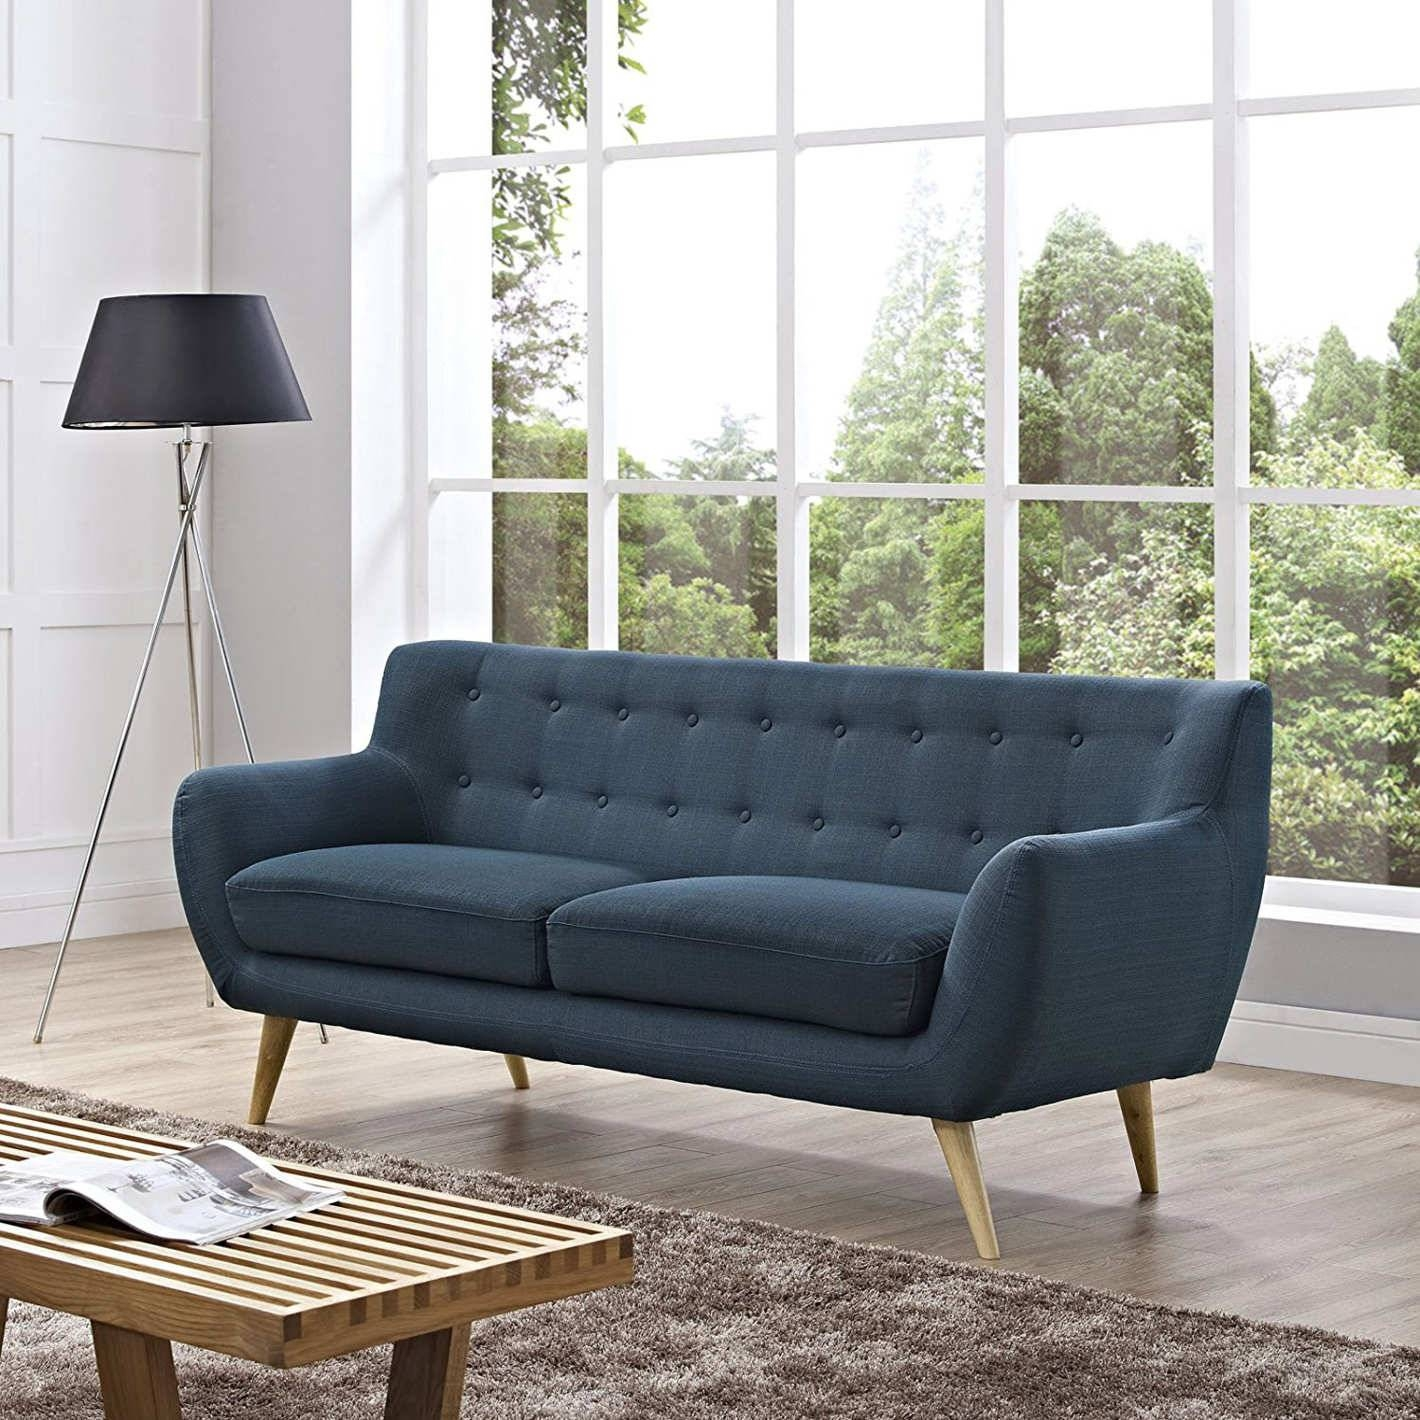 The Best Sofas Under $500 (Plus A Few Under $1000) within Mod Sofas (Image 29 of 30)